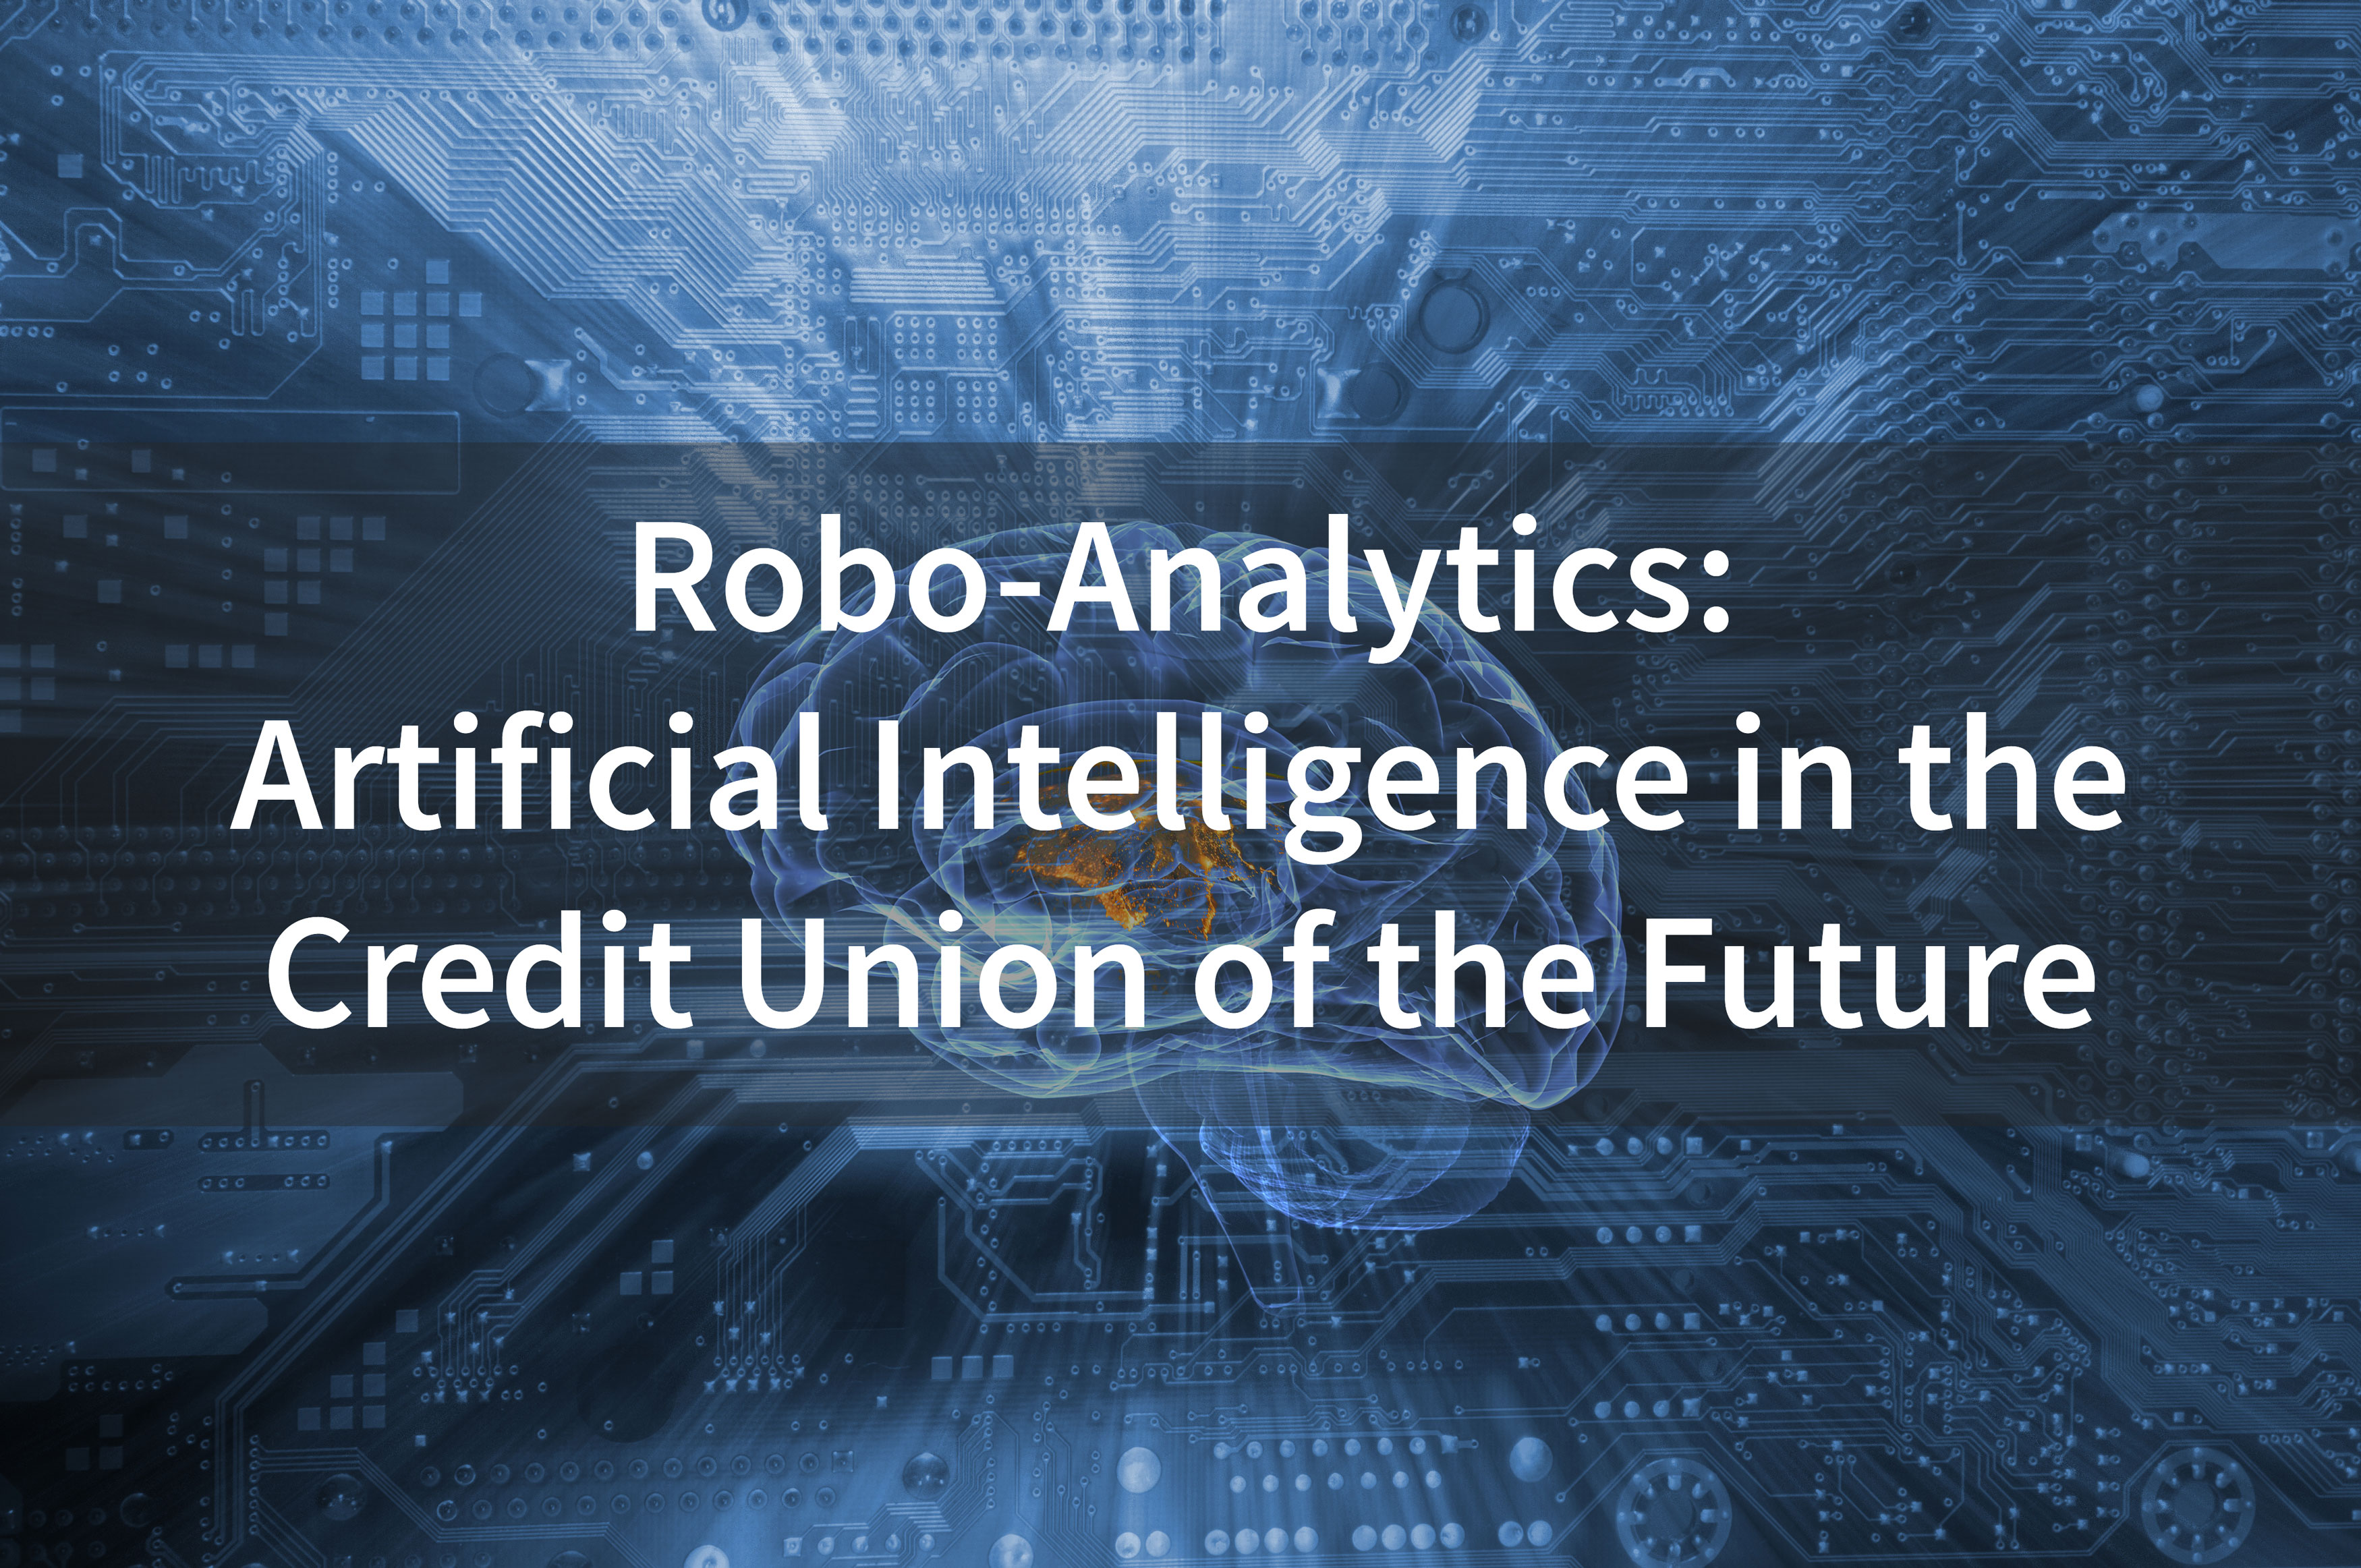 Robo-Analytics,-Artificial-Intelligence-in-the-Credit-Union-of-the-Future.jpg